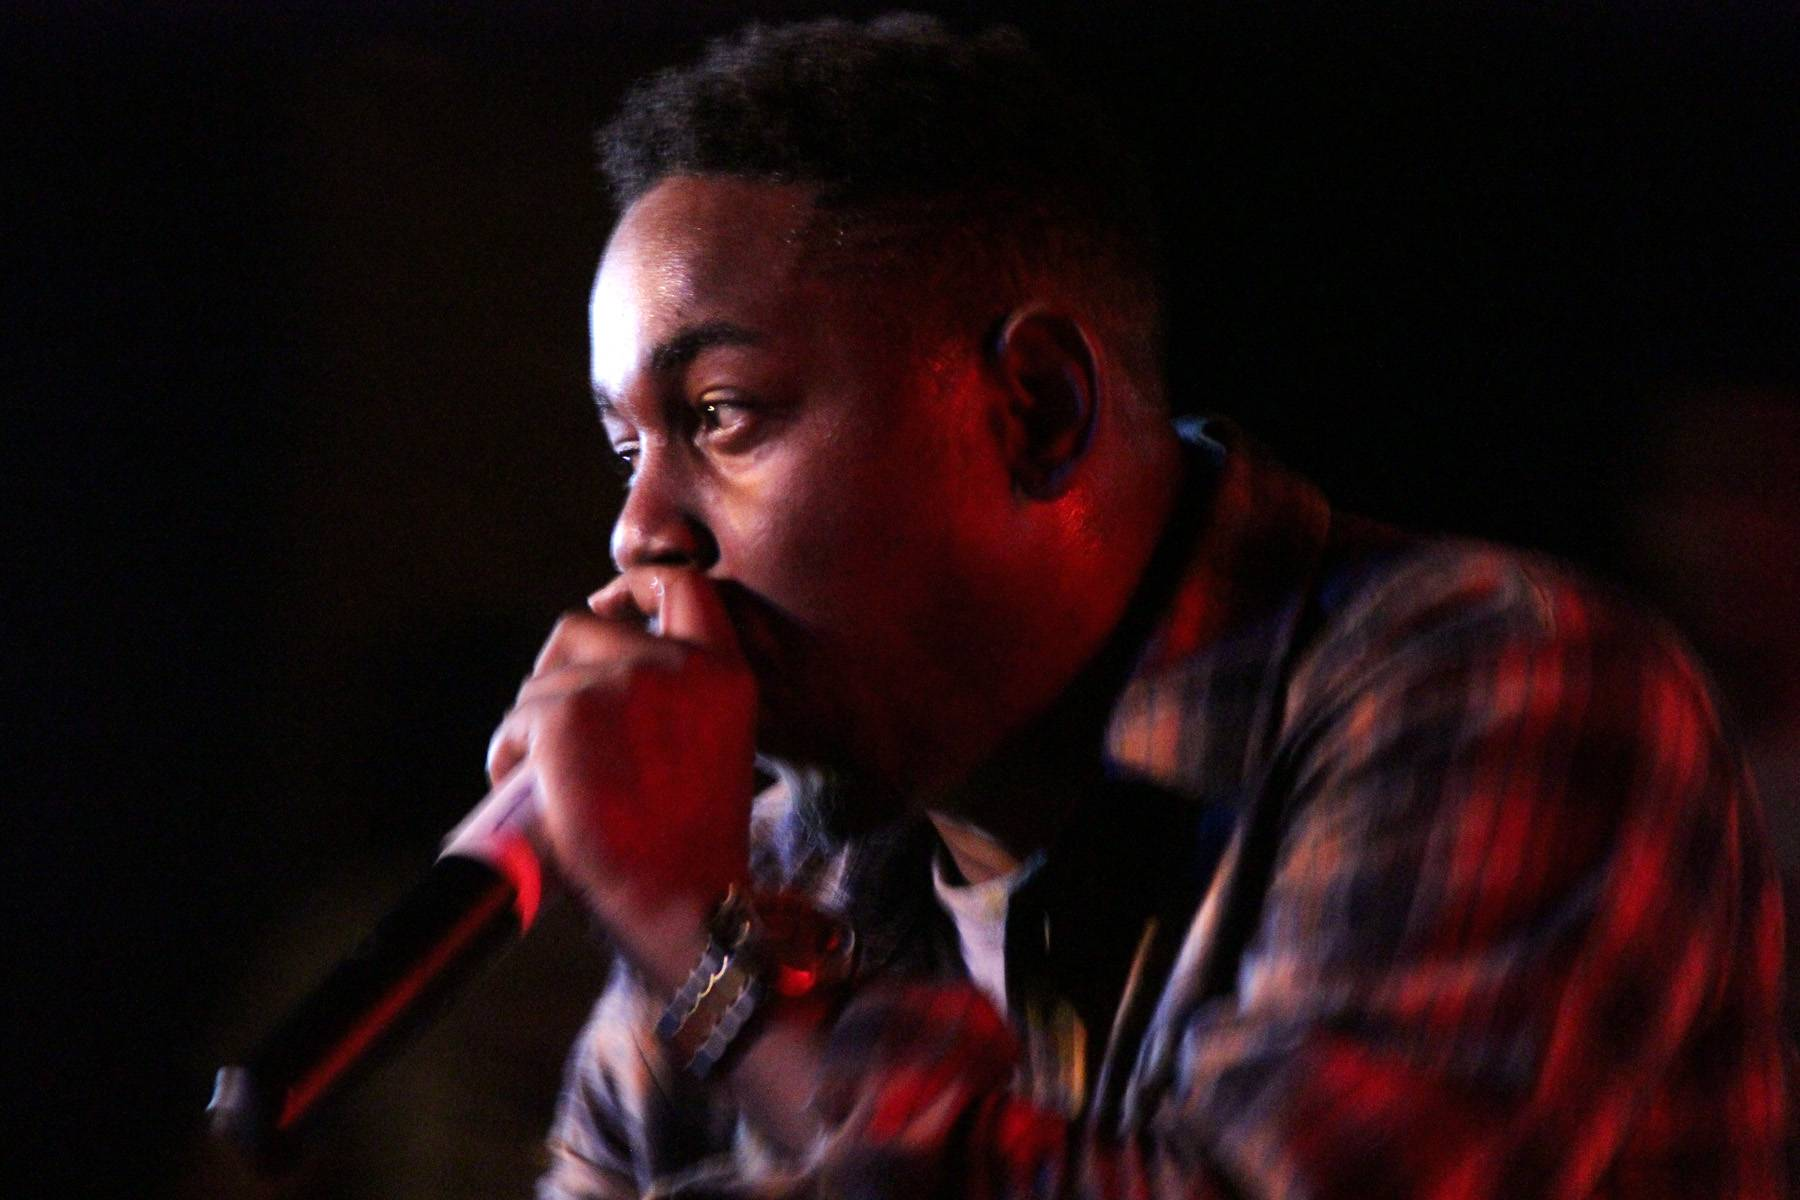 """""""Black Boy Fly"""" - This track alone justifies the extra three dollars for the deluxe edition of the album. Kendrick Lamar is at his introspective best, breaking down crabs-in-a-barrel jealousy and poignantly name-dropping Compton heroes the Game and Arron Afflalo over mournful Rhodes chords.  (Photo: Solomon Scott / BET)"""